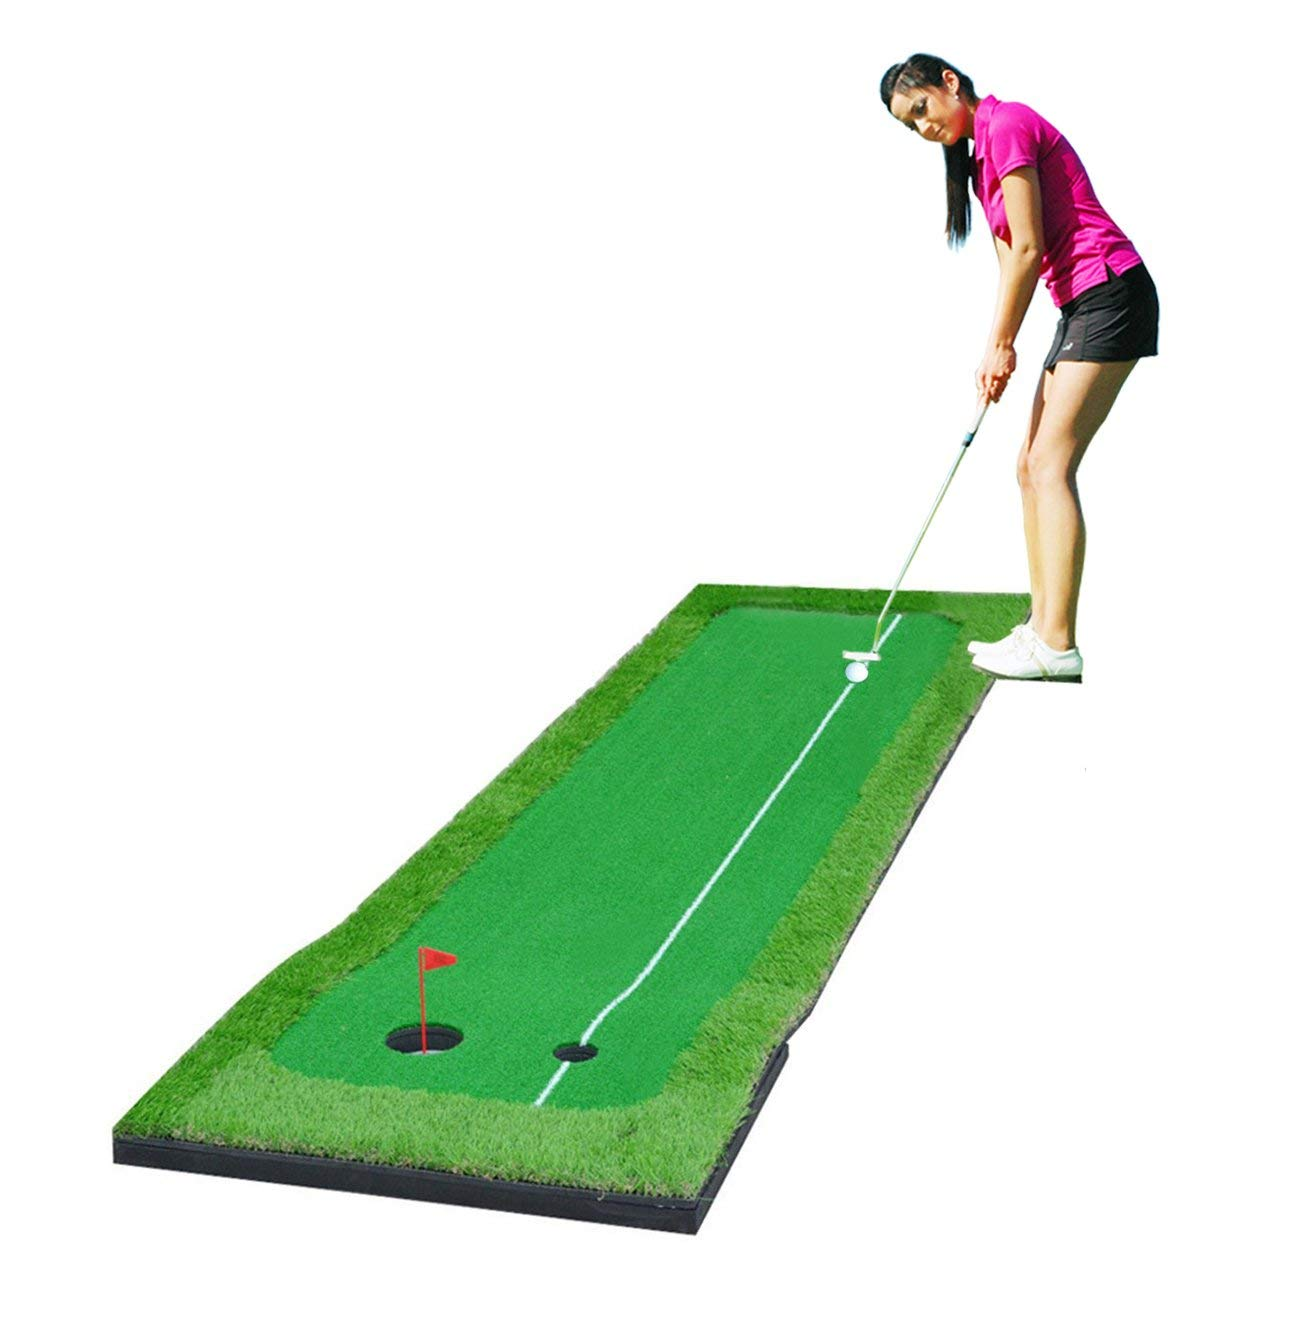 77tech Large Artificial Grass Golf Putting Green Mat Indoor/Outdoor Golf Training Aid Equipment Mat (2.5'x10' with Base) by 77tech